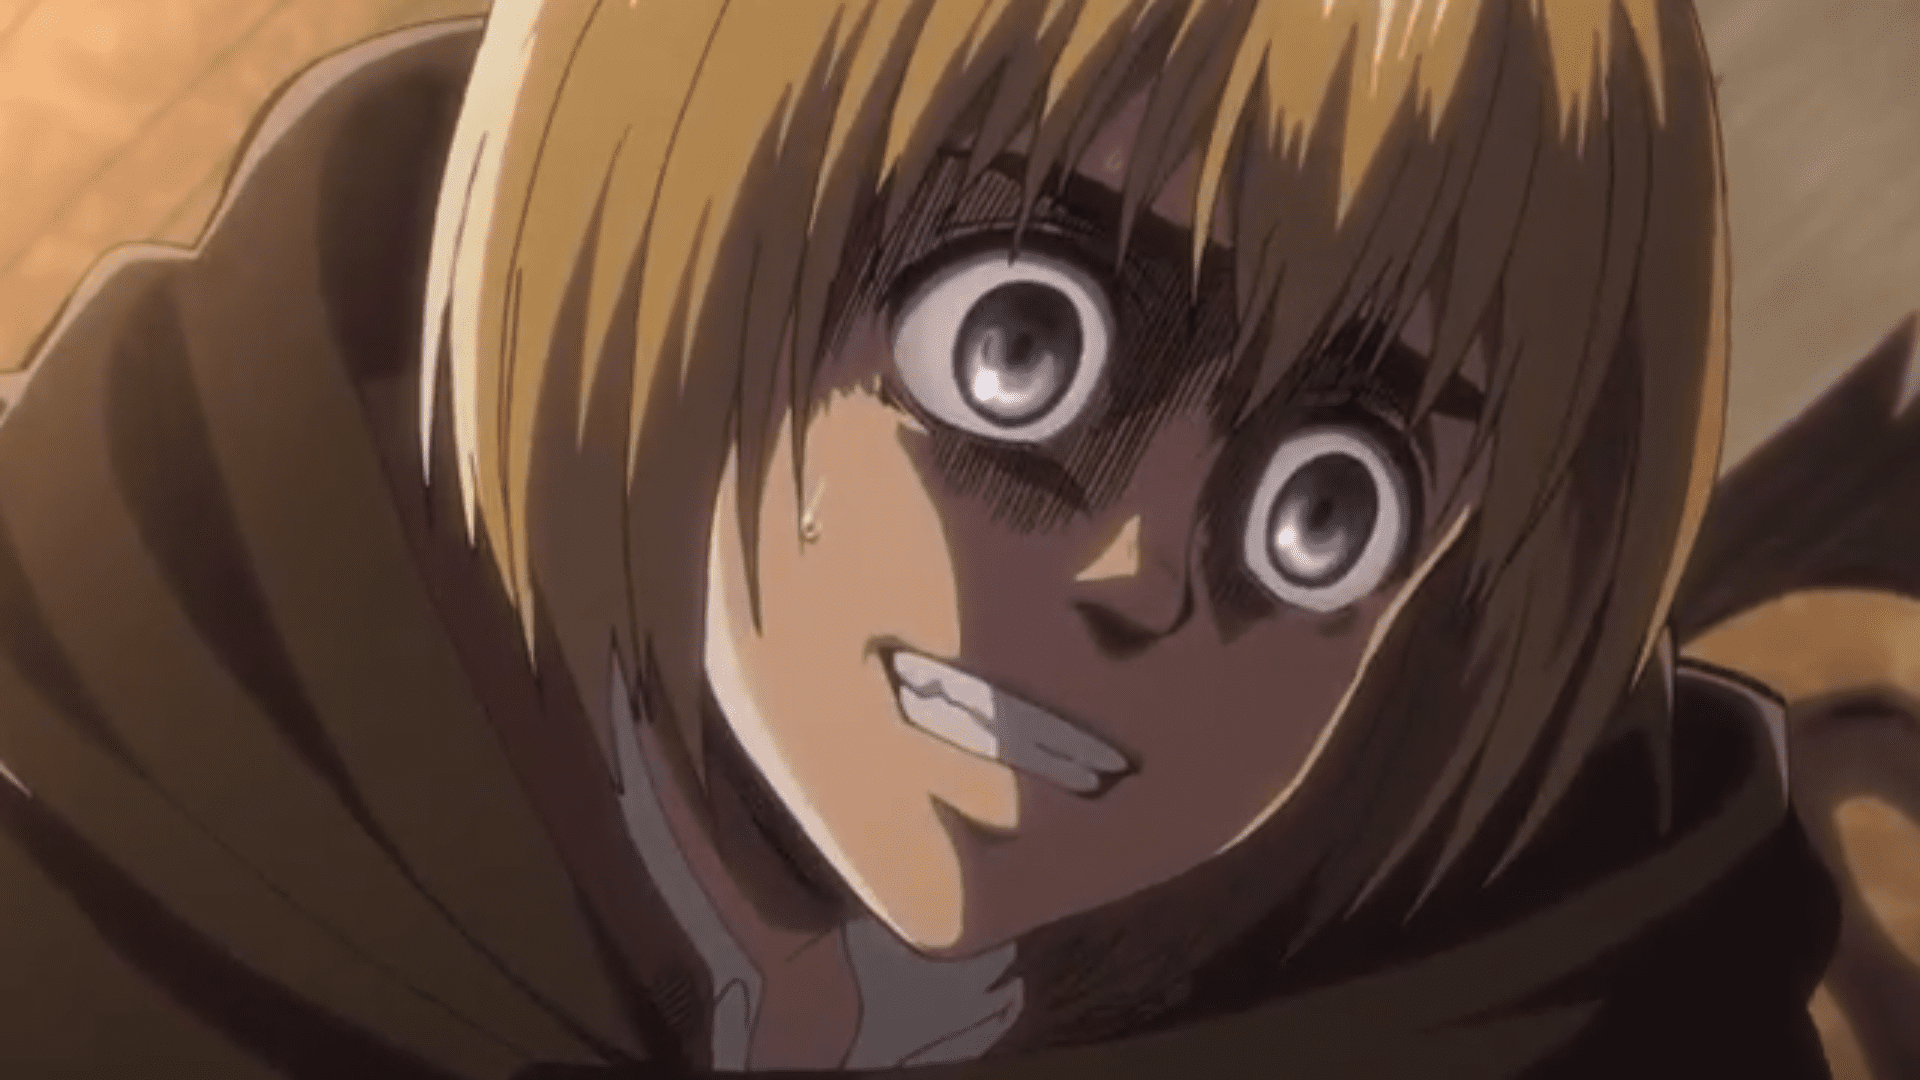 Attack On Titan Season 2 Episode 11 (36) - Charge Review » OmniGeekEmpire